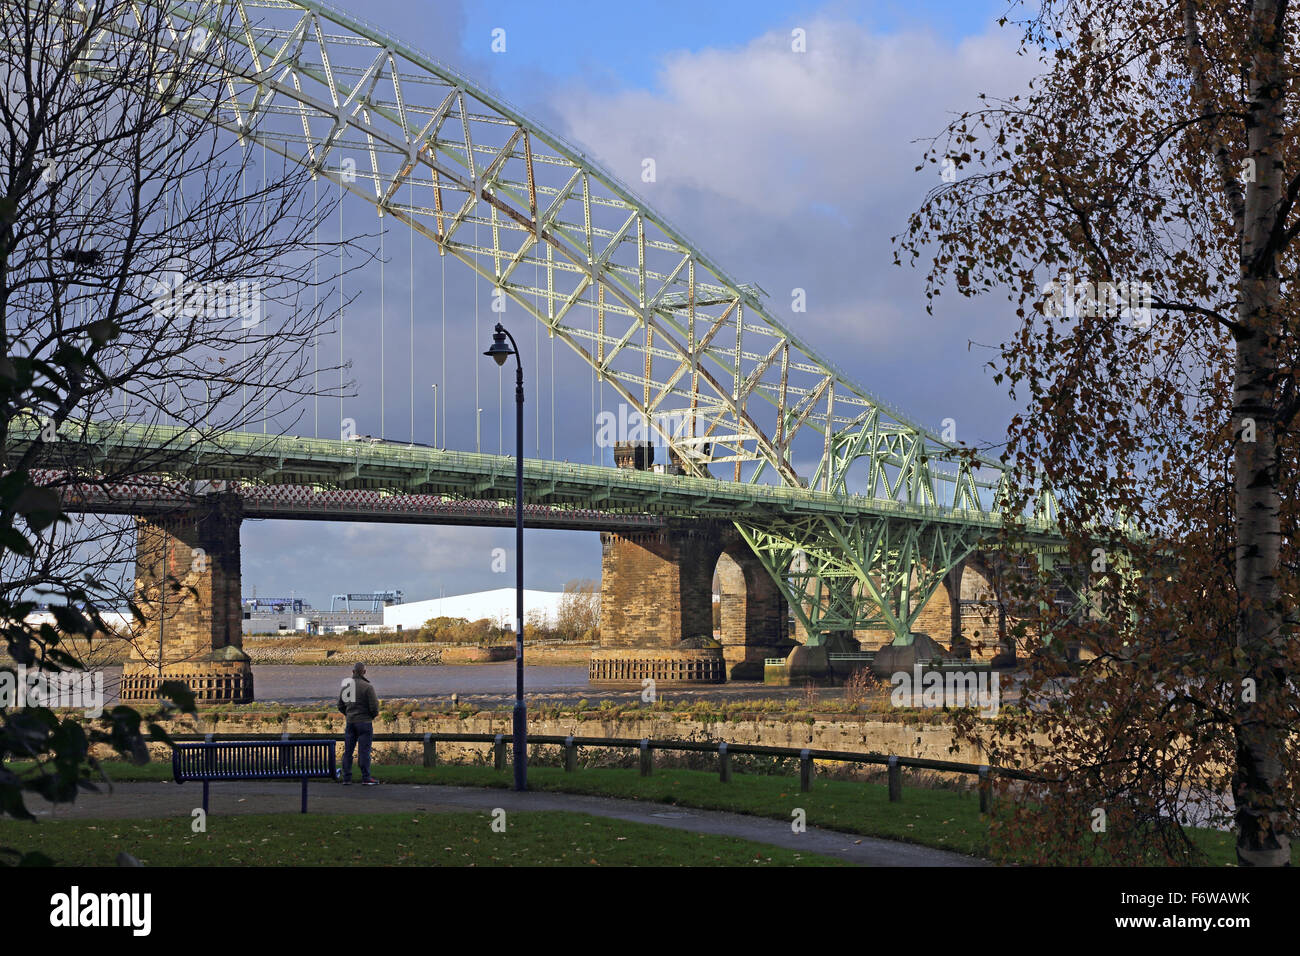 A man looks at the Silver Jubilee bridge across the River Mersey in Runcorn, Cheshire, UK - Stock Image